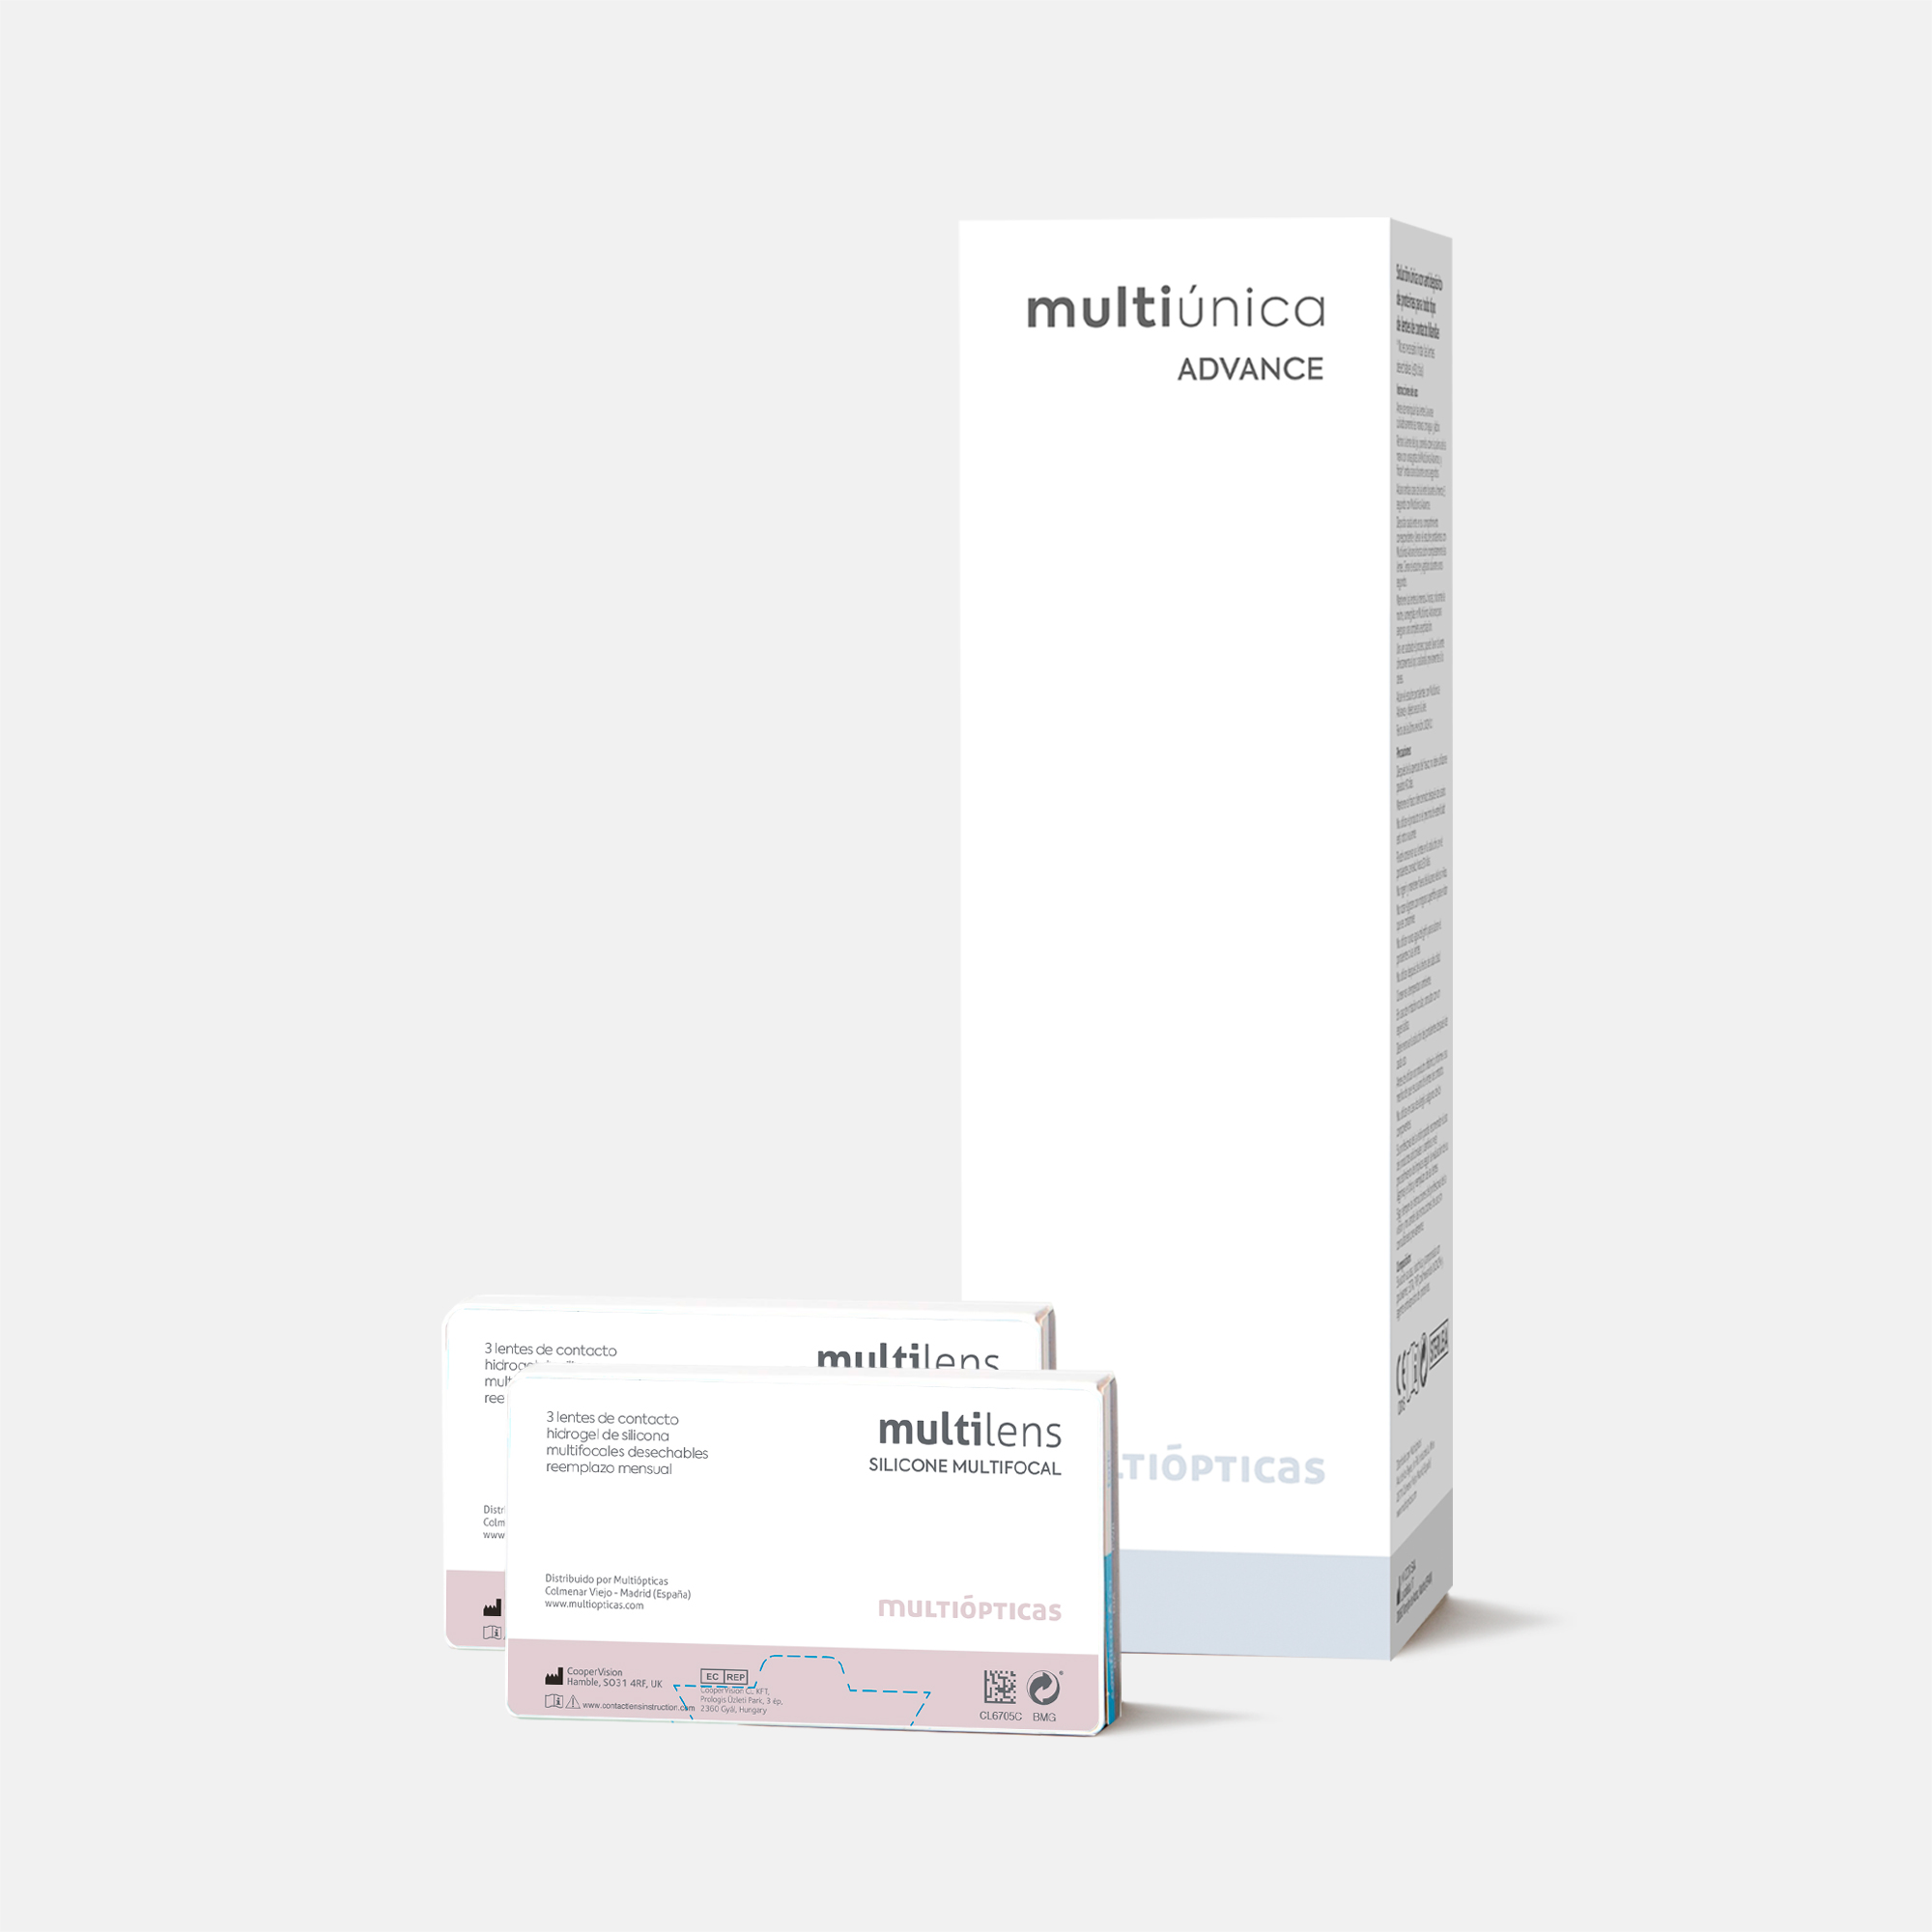 Pack trimestral multilens silicone multifocal, , medium.